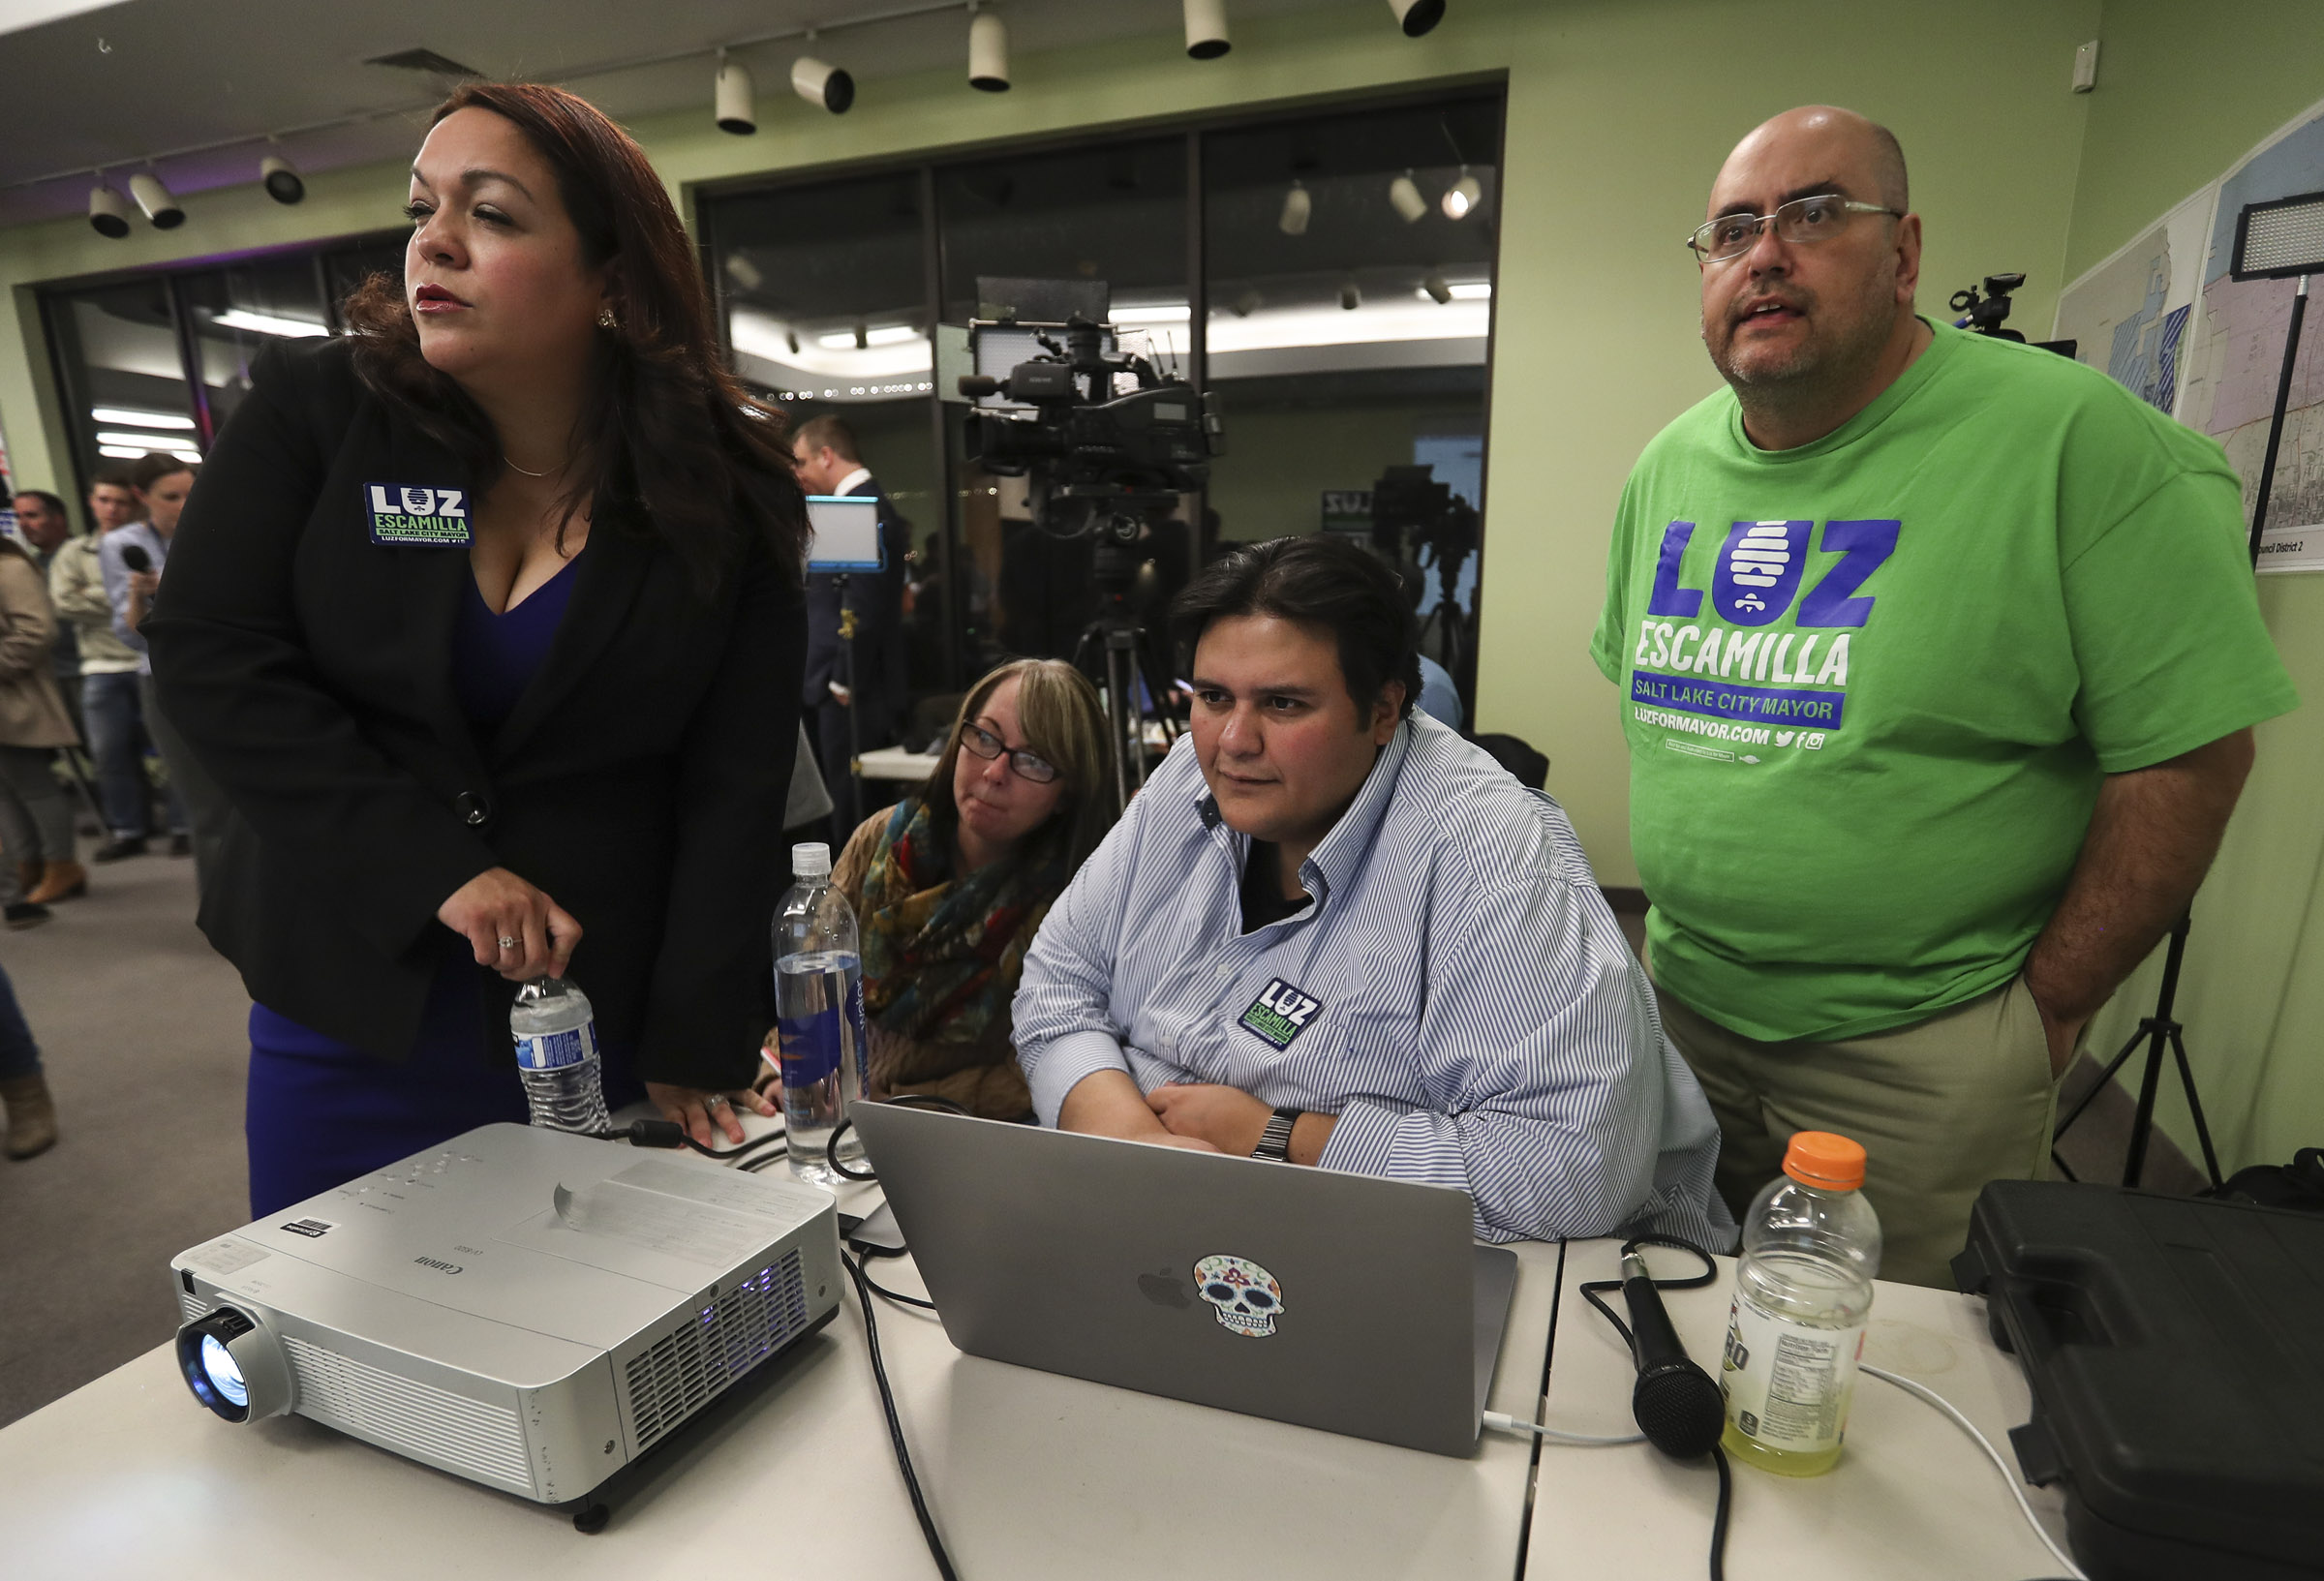 Salt Lake City mayoral candidate and state Sen. Luz Escamilla, left, looks at results that are projected on a screen with volunteer Tracy Taylor, campaign field director Richard Jaramillo, and volunteer Ernie Gamonal from her election night headquarters in Salt Lake City on Tuesday, Nov. 5, 2019.